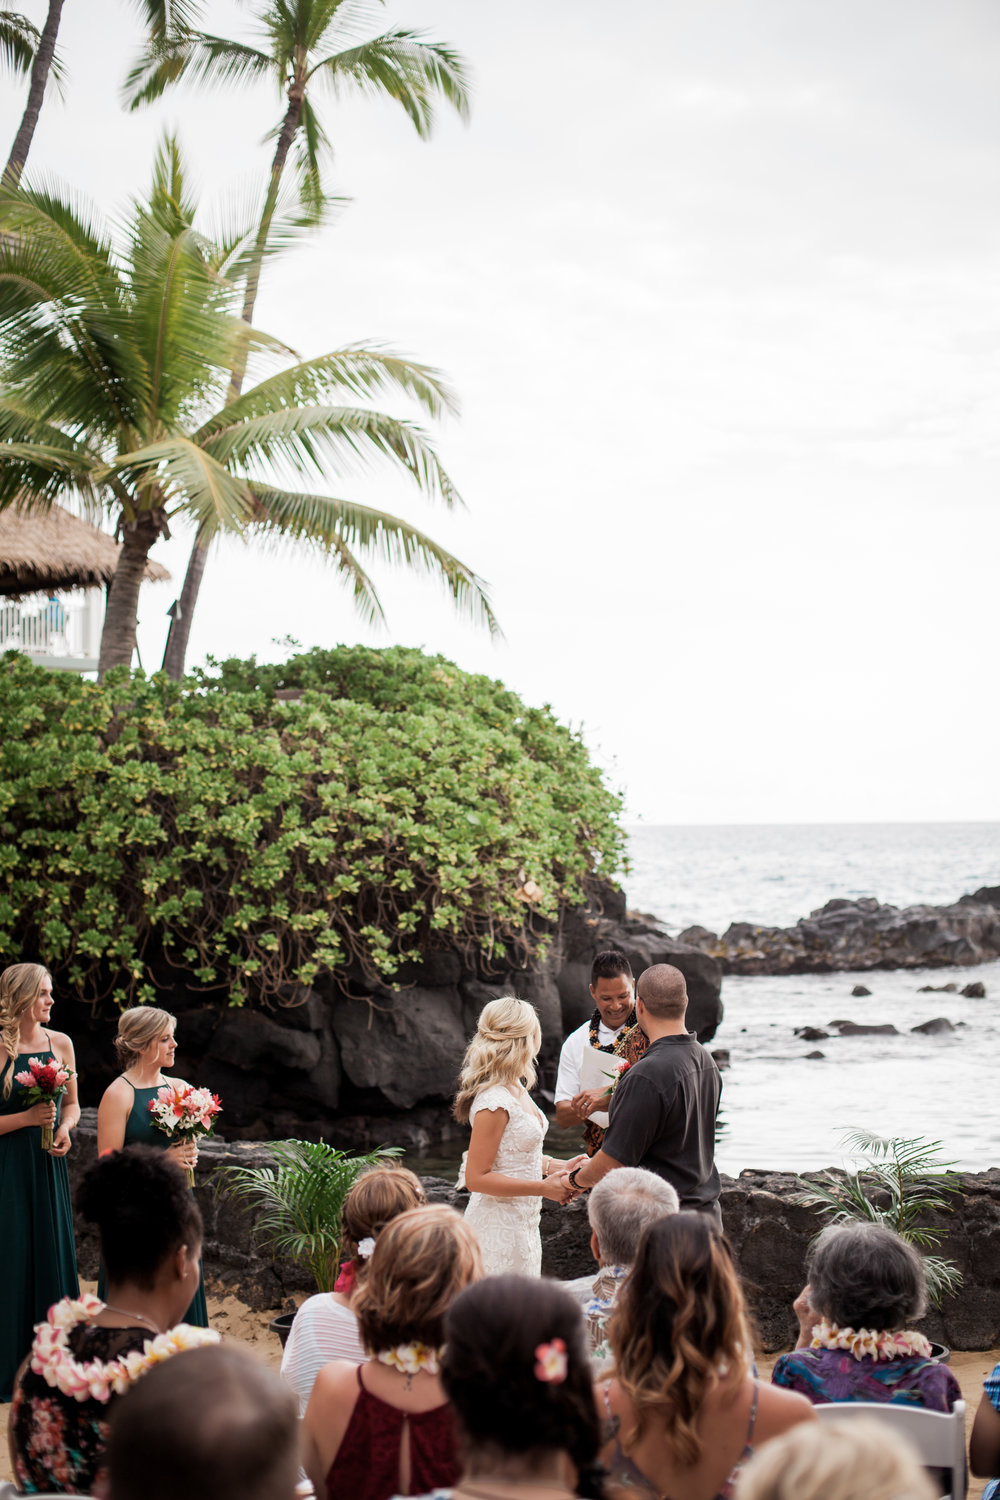 big island hawaii royal kona resort beach wedding © kelilina photography 20170520165530.jpg